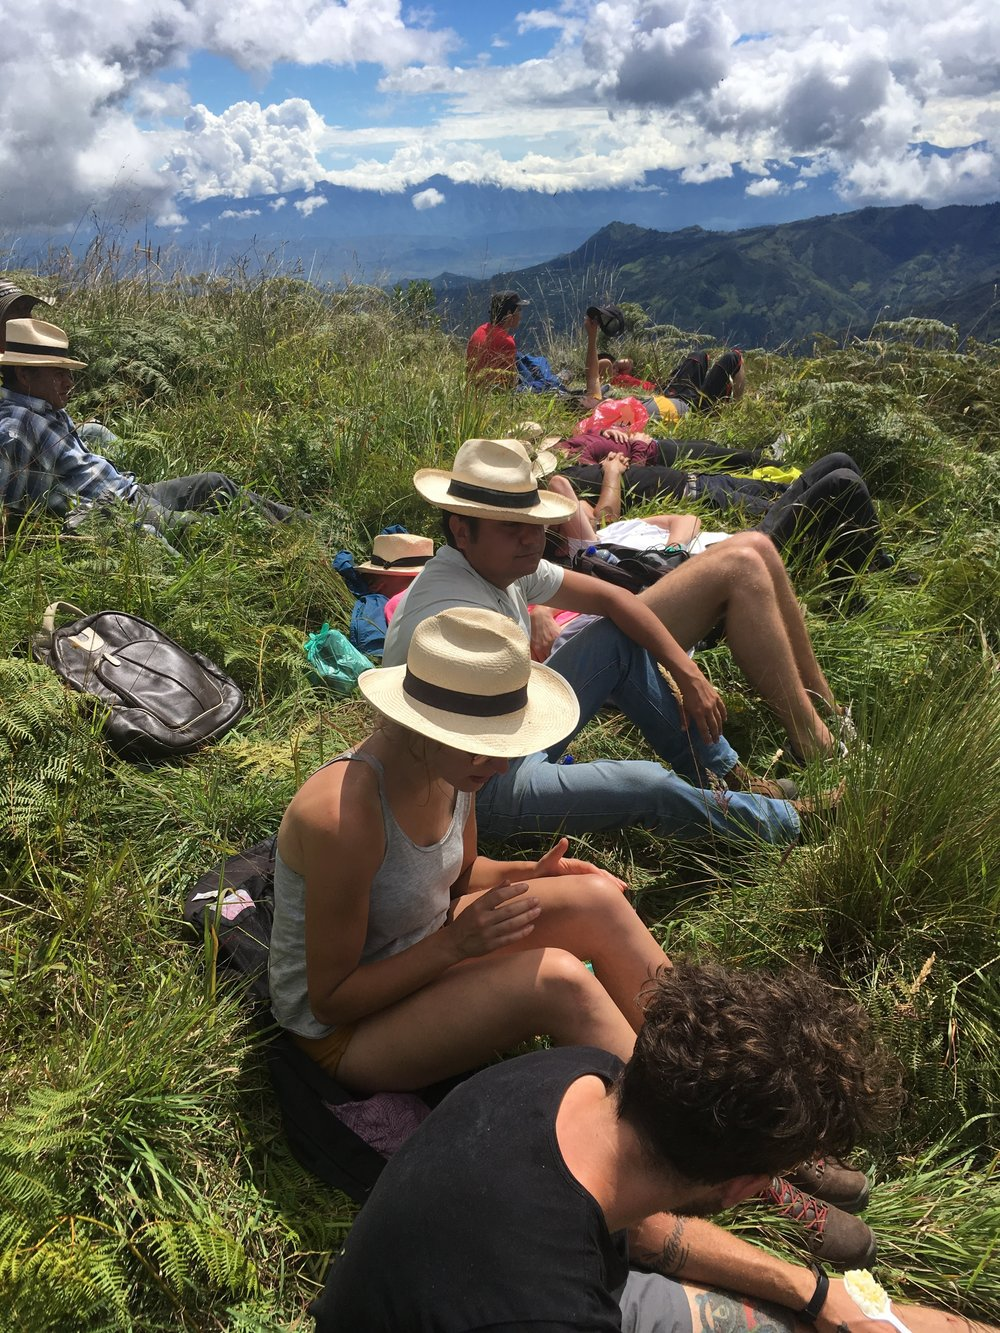 The Field Barista Project is not all work and no play - the hike up to the peaks above Génova is one of the most beautiful things you'll do in your life... Rewarded with the best Colombian lunch at the highest point.